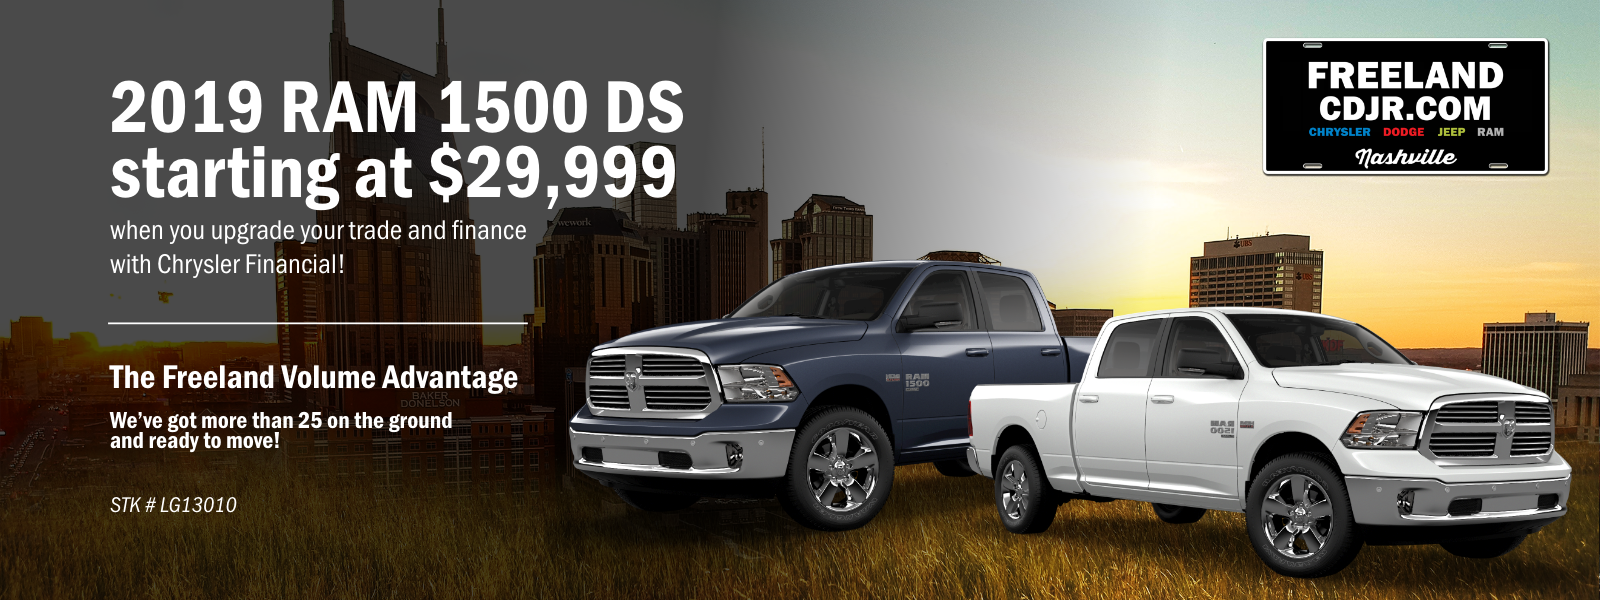 RAM 1500 DS special